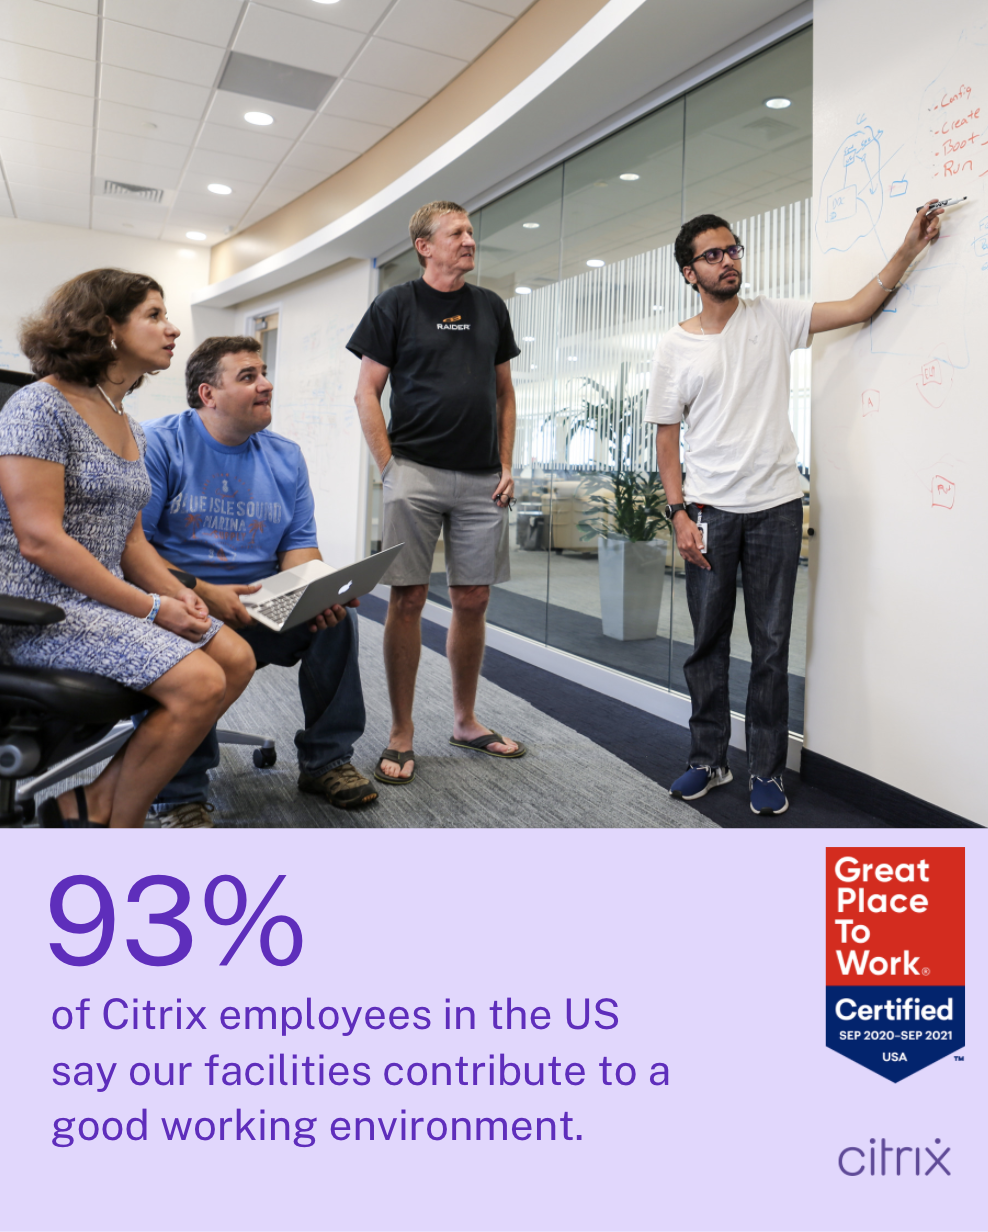 93% of Citrix employees in the US say our facilities contribute to a good working environment.